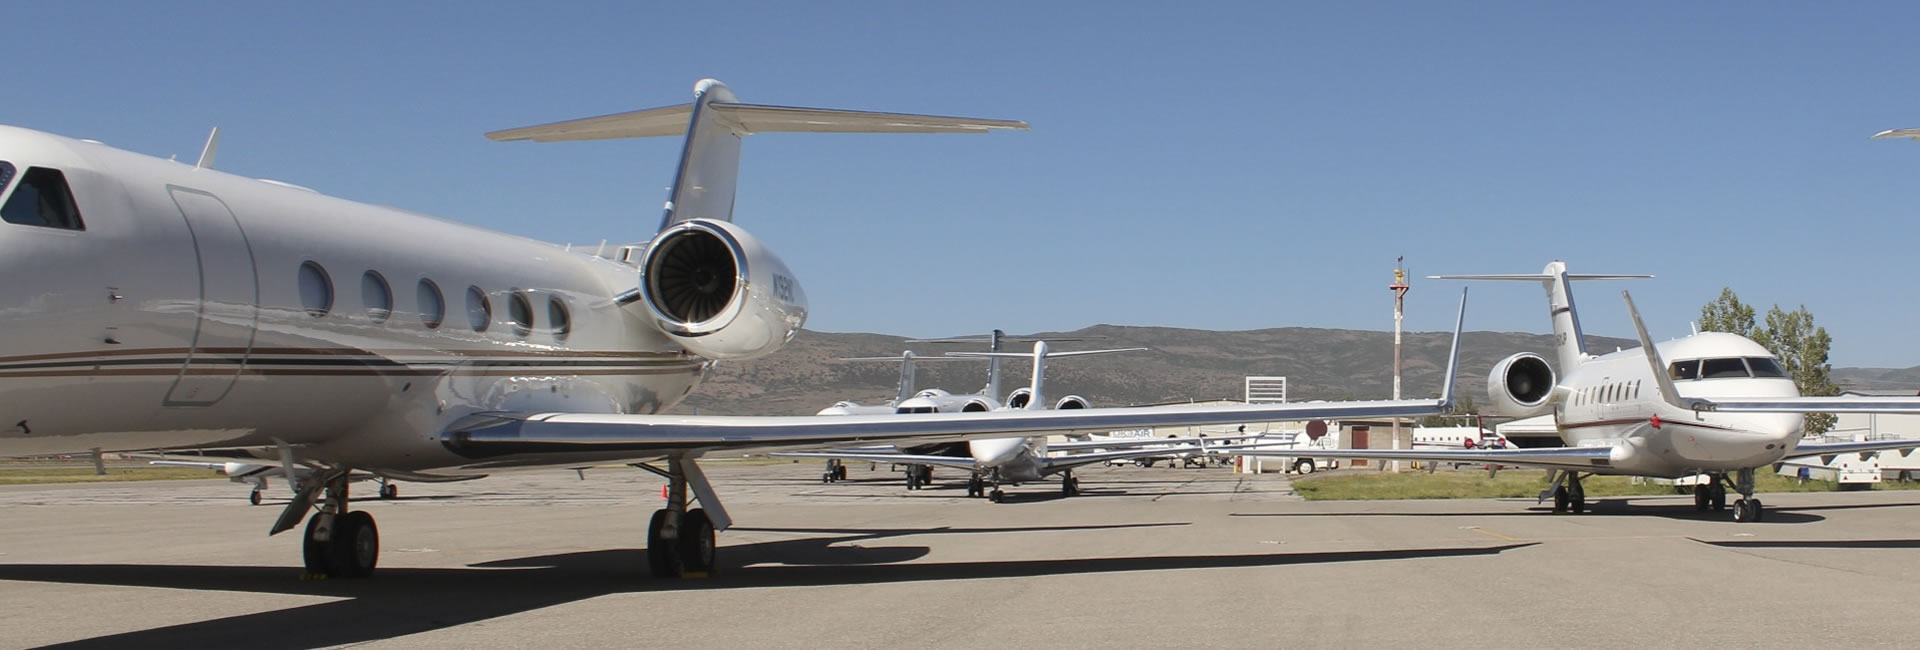 OK3 AIR | Full-service FBO serving Park City, Deer Valley, and Heber City, Utah